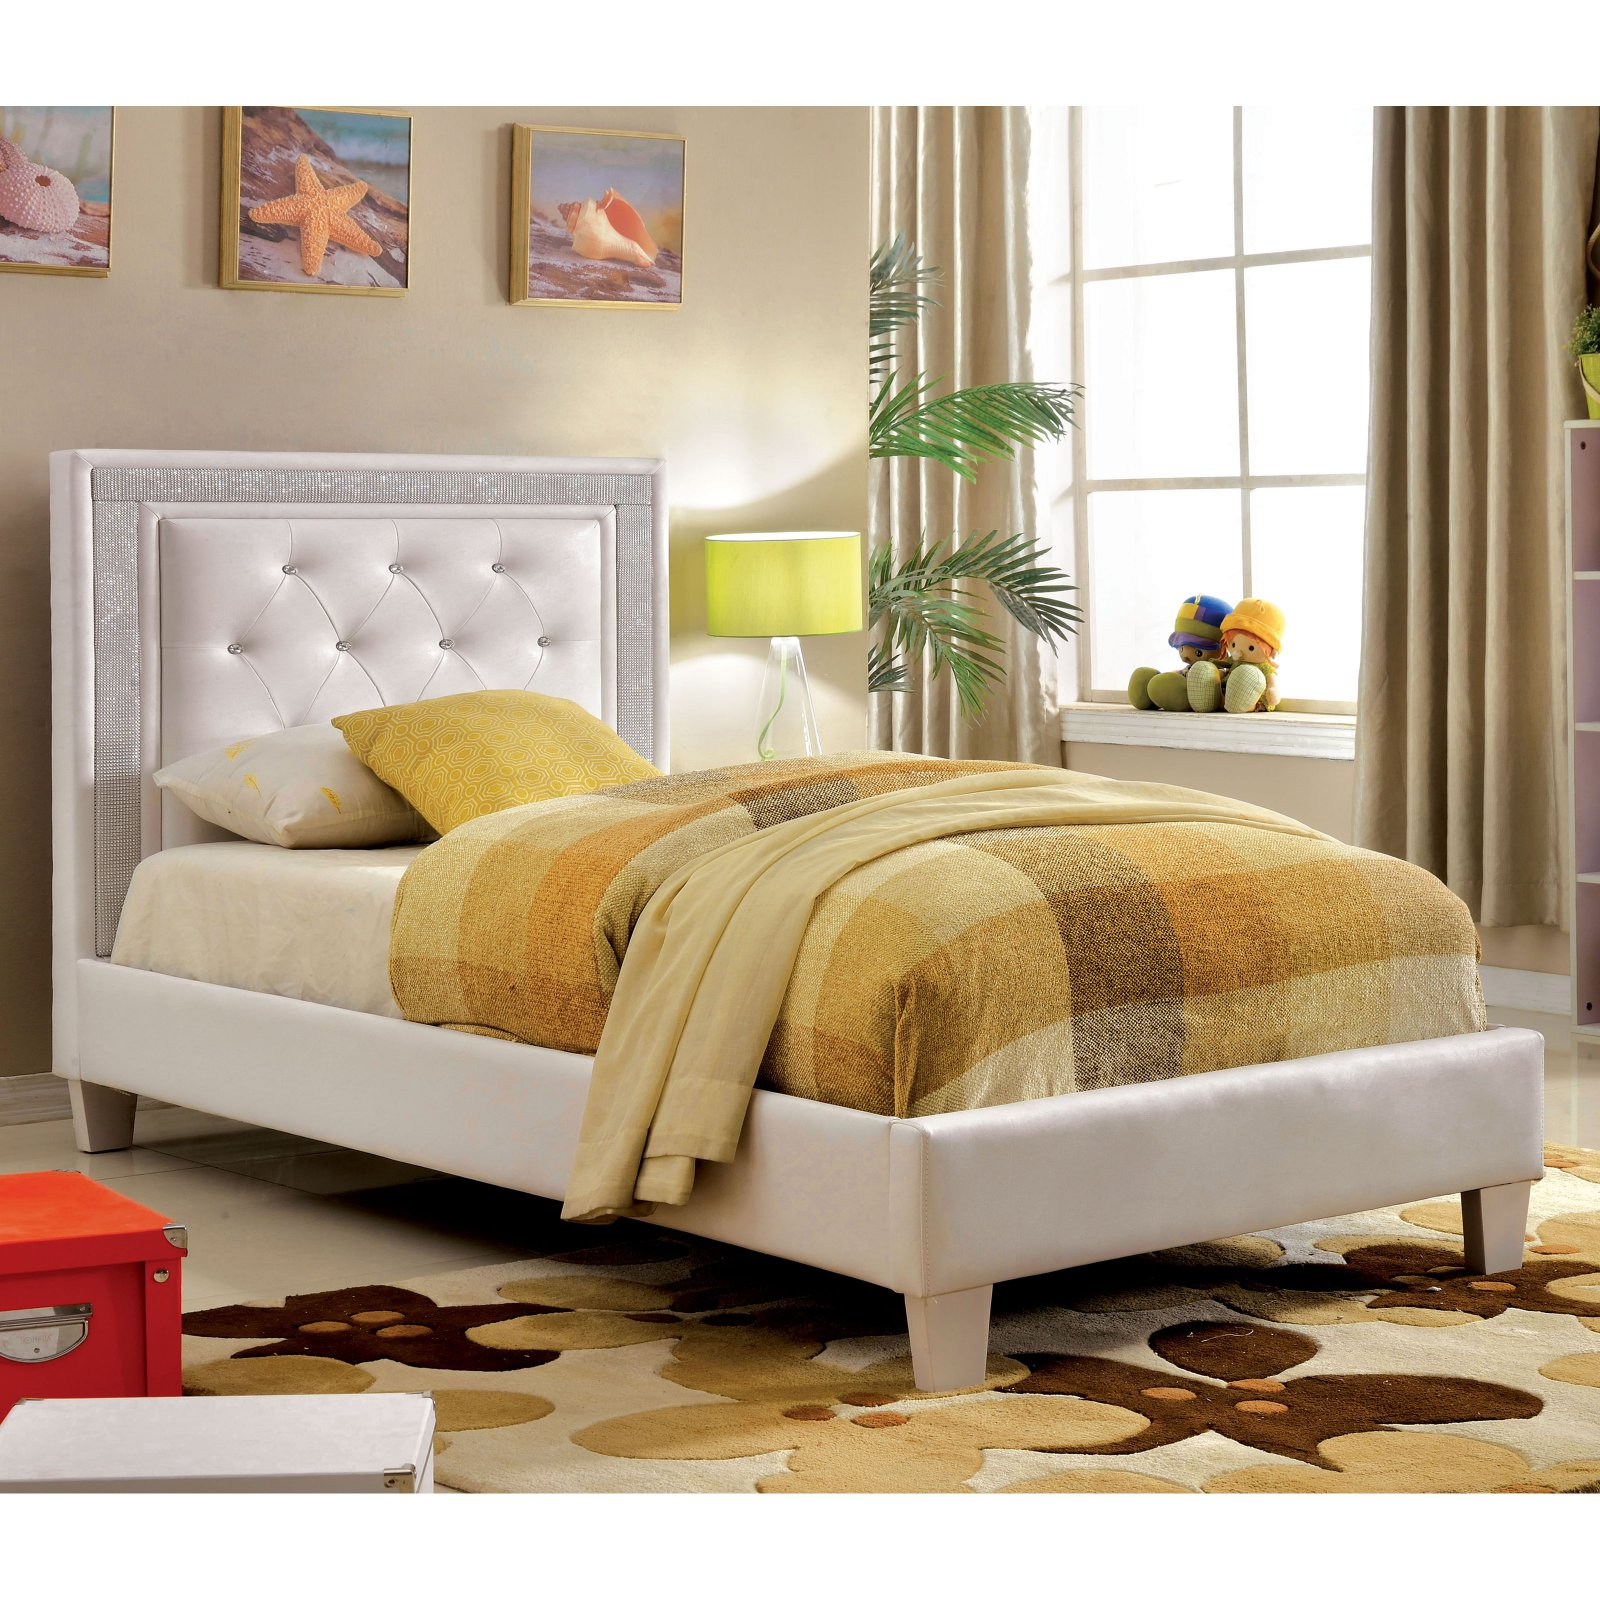 Furniture of America Ellis Youth Platform Bed